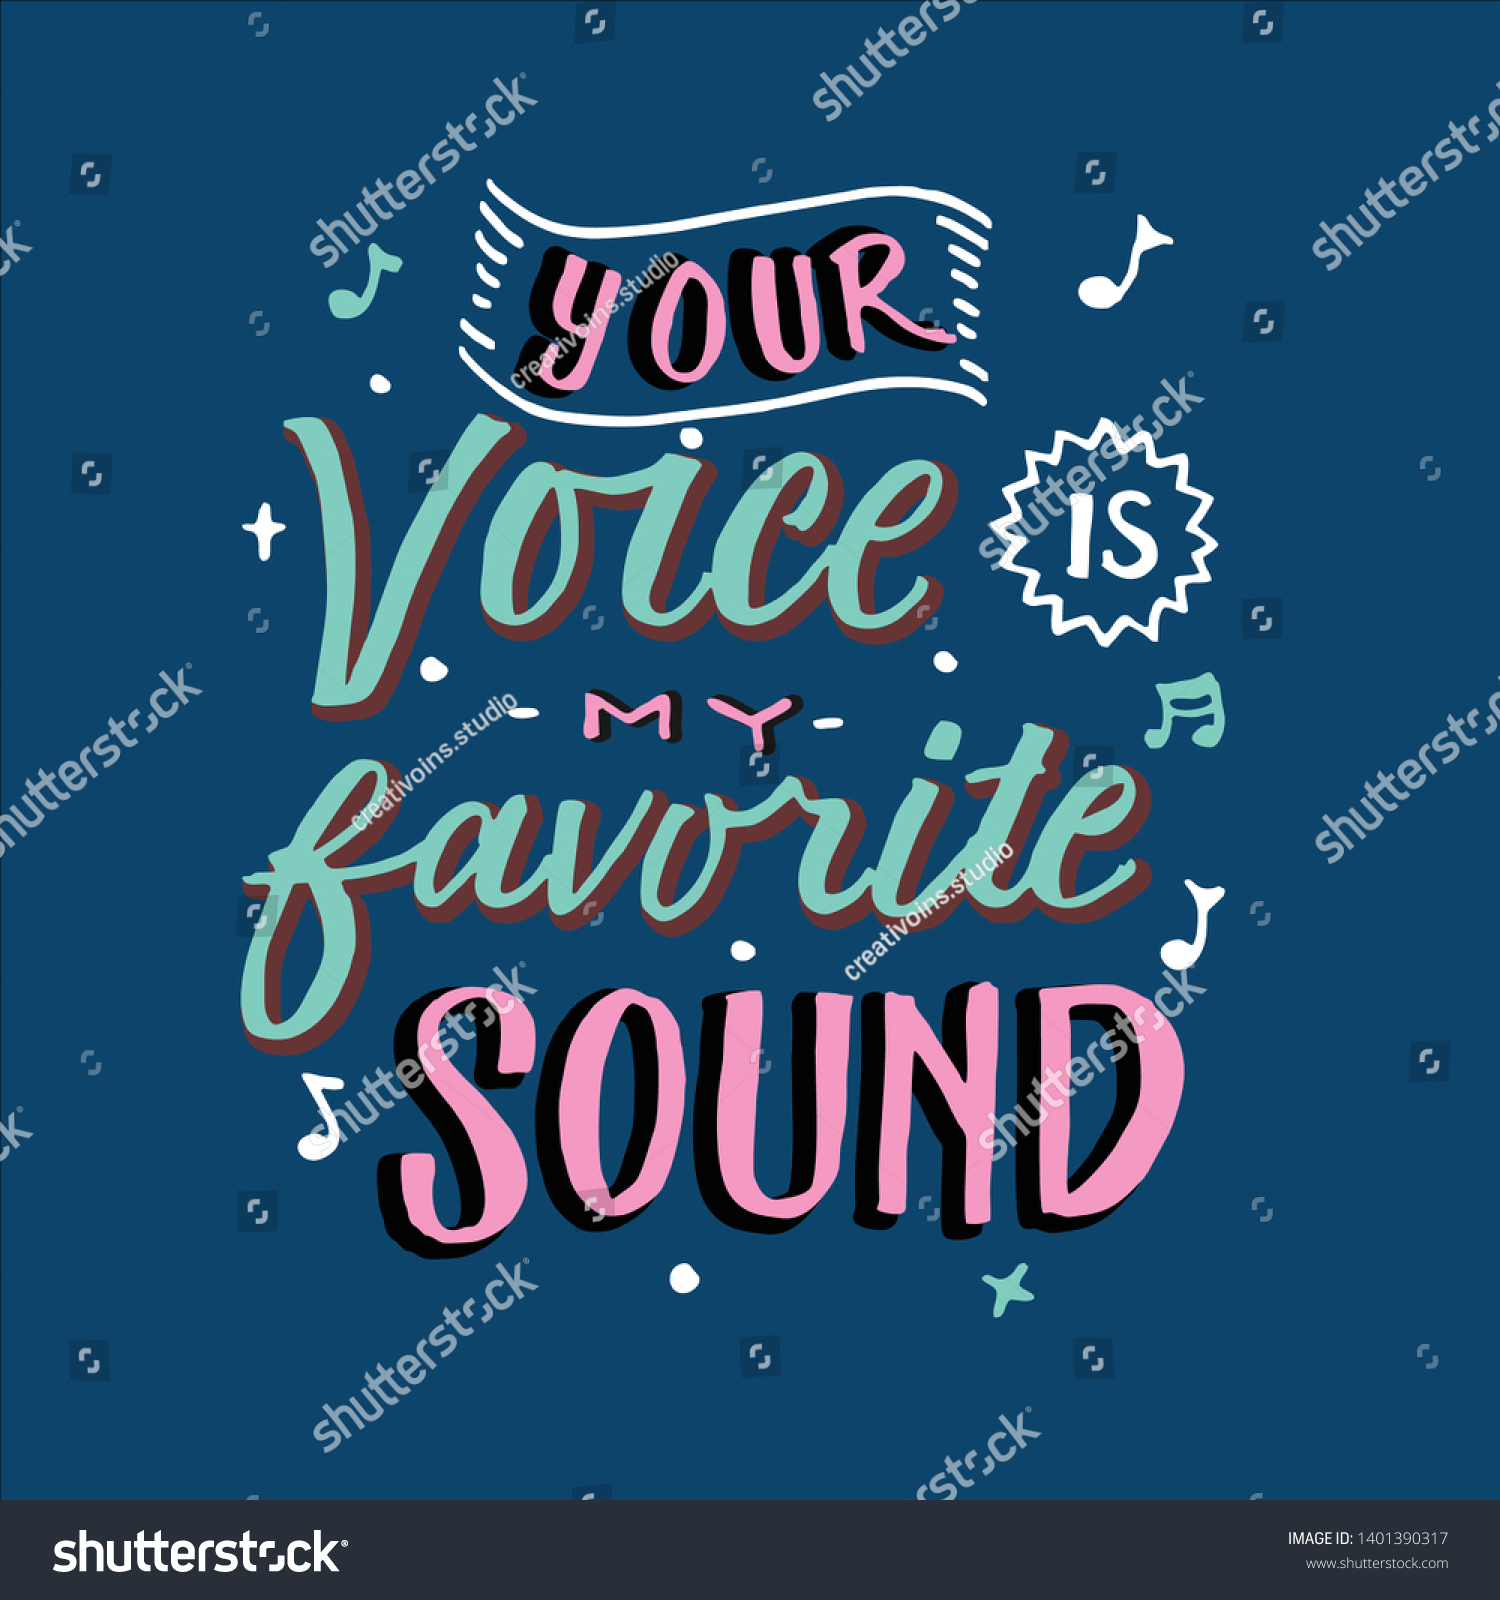 Vector De Stock Libre De Regalías Sobre Your Voice My